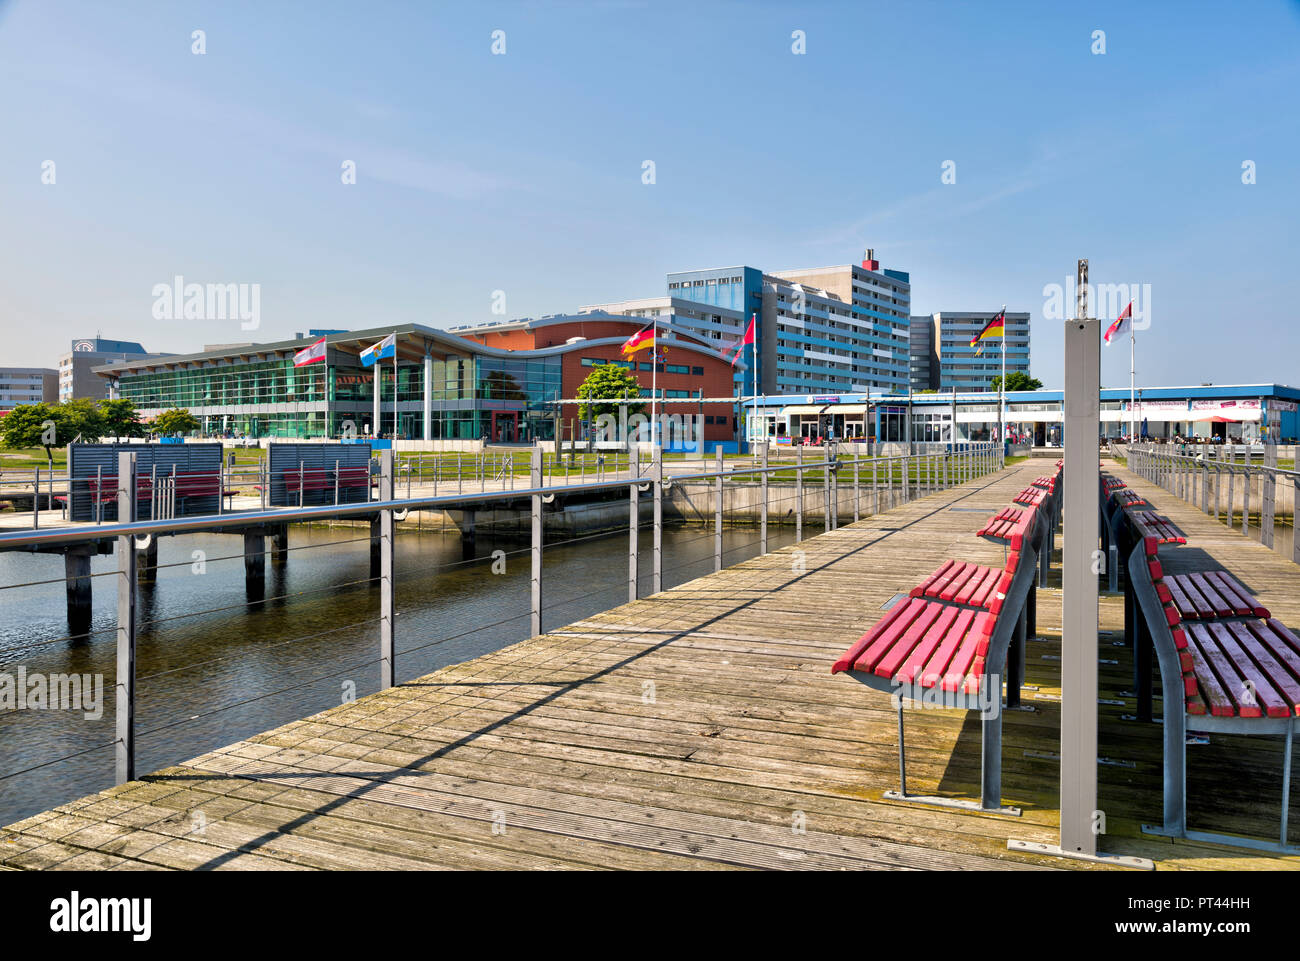 holiday park am Steinwarder, inland lake, Holiday Park, Heiligenhafen, Baltic Sea, Schleswig Holstein, Germany, Europe - Stock Image